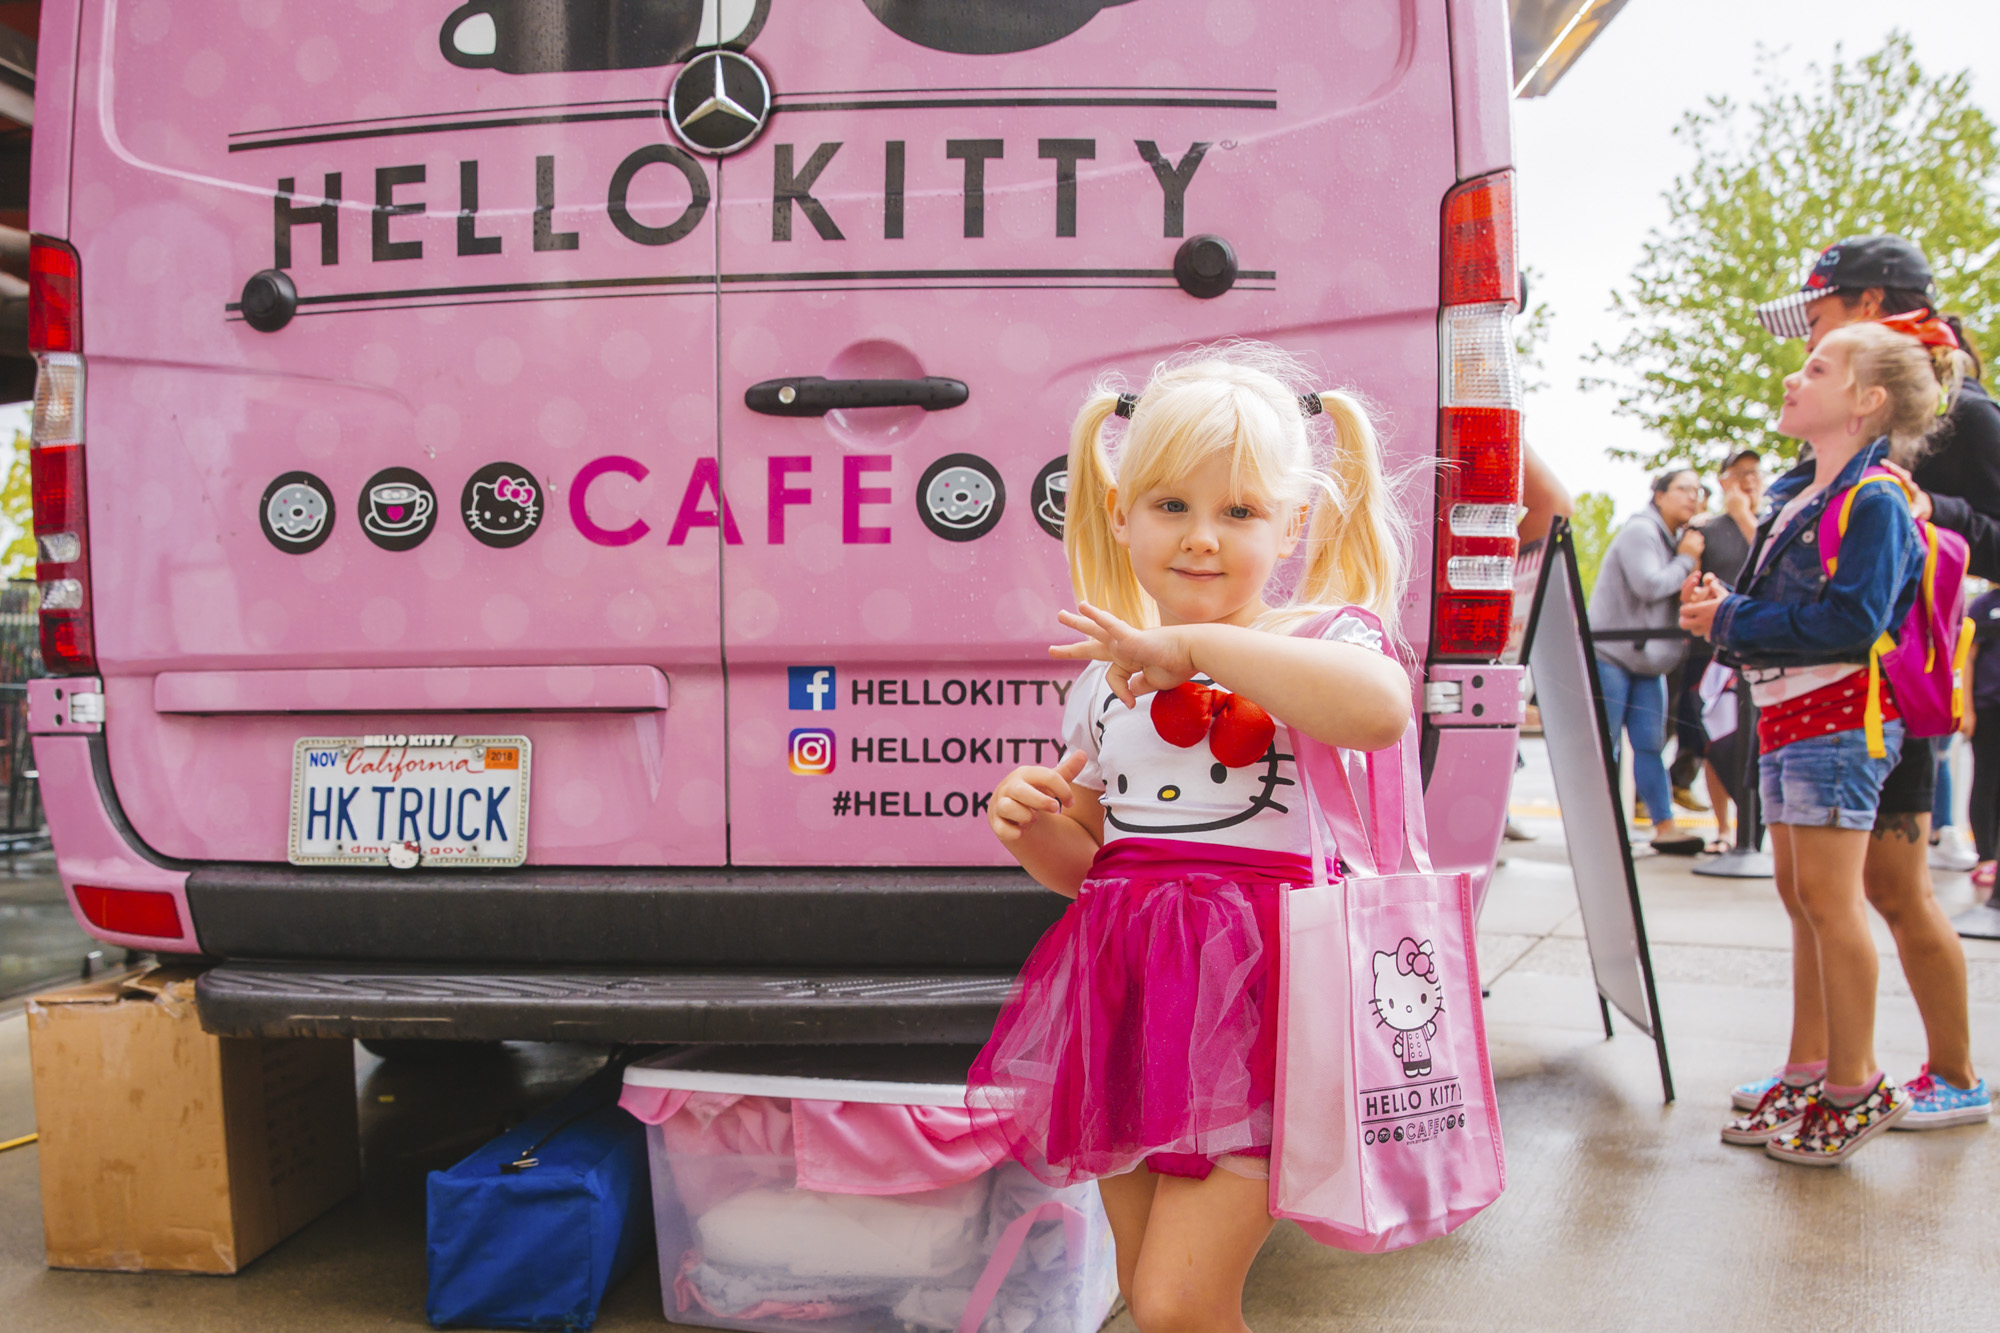 <p>It's SO much more than a truck! The Hello Kitty Cafe truck is back in town this weekend at Southcenter Mall! Fans found the like of a Giant Hello Kitty Chef cookie, lunchbox with confetti popcorn, plus toys, petit fours, and many many other collectibles. From the lines we saw when we were out there, this Kitty has not lost any popularity over the years!{&nbsp;} Since it's launch as Sanrio's first food-related venture, two Hello Kitty Cafe trucks have traveled to more than 60 cities across both coasts. (Image: Sunita Martini / Seattle Refined)</p>